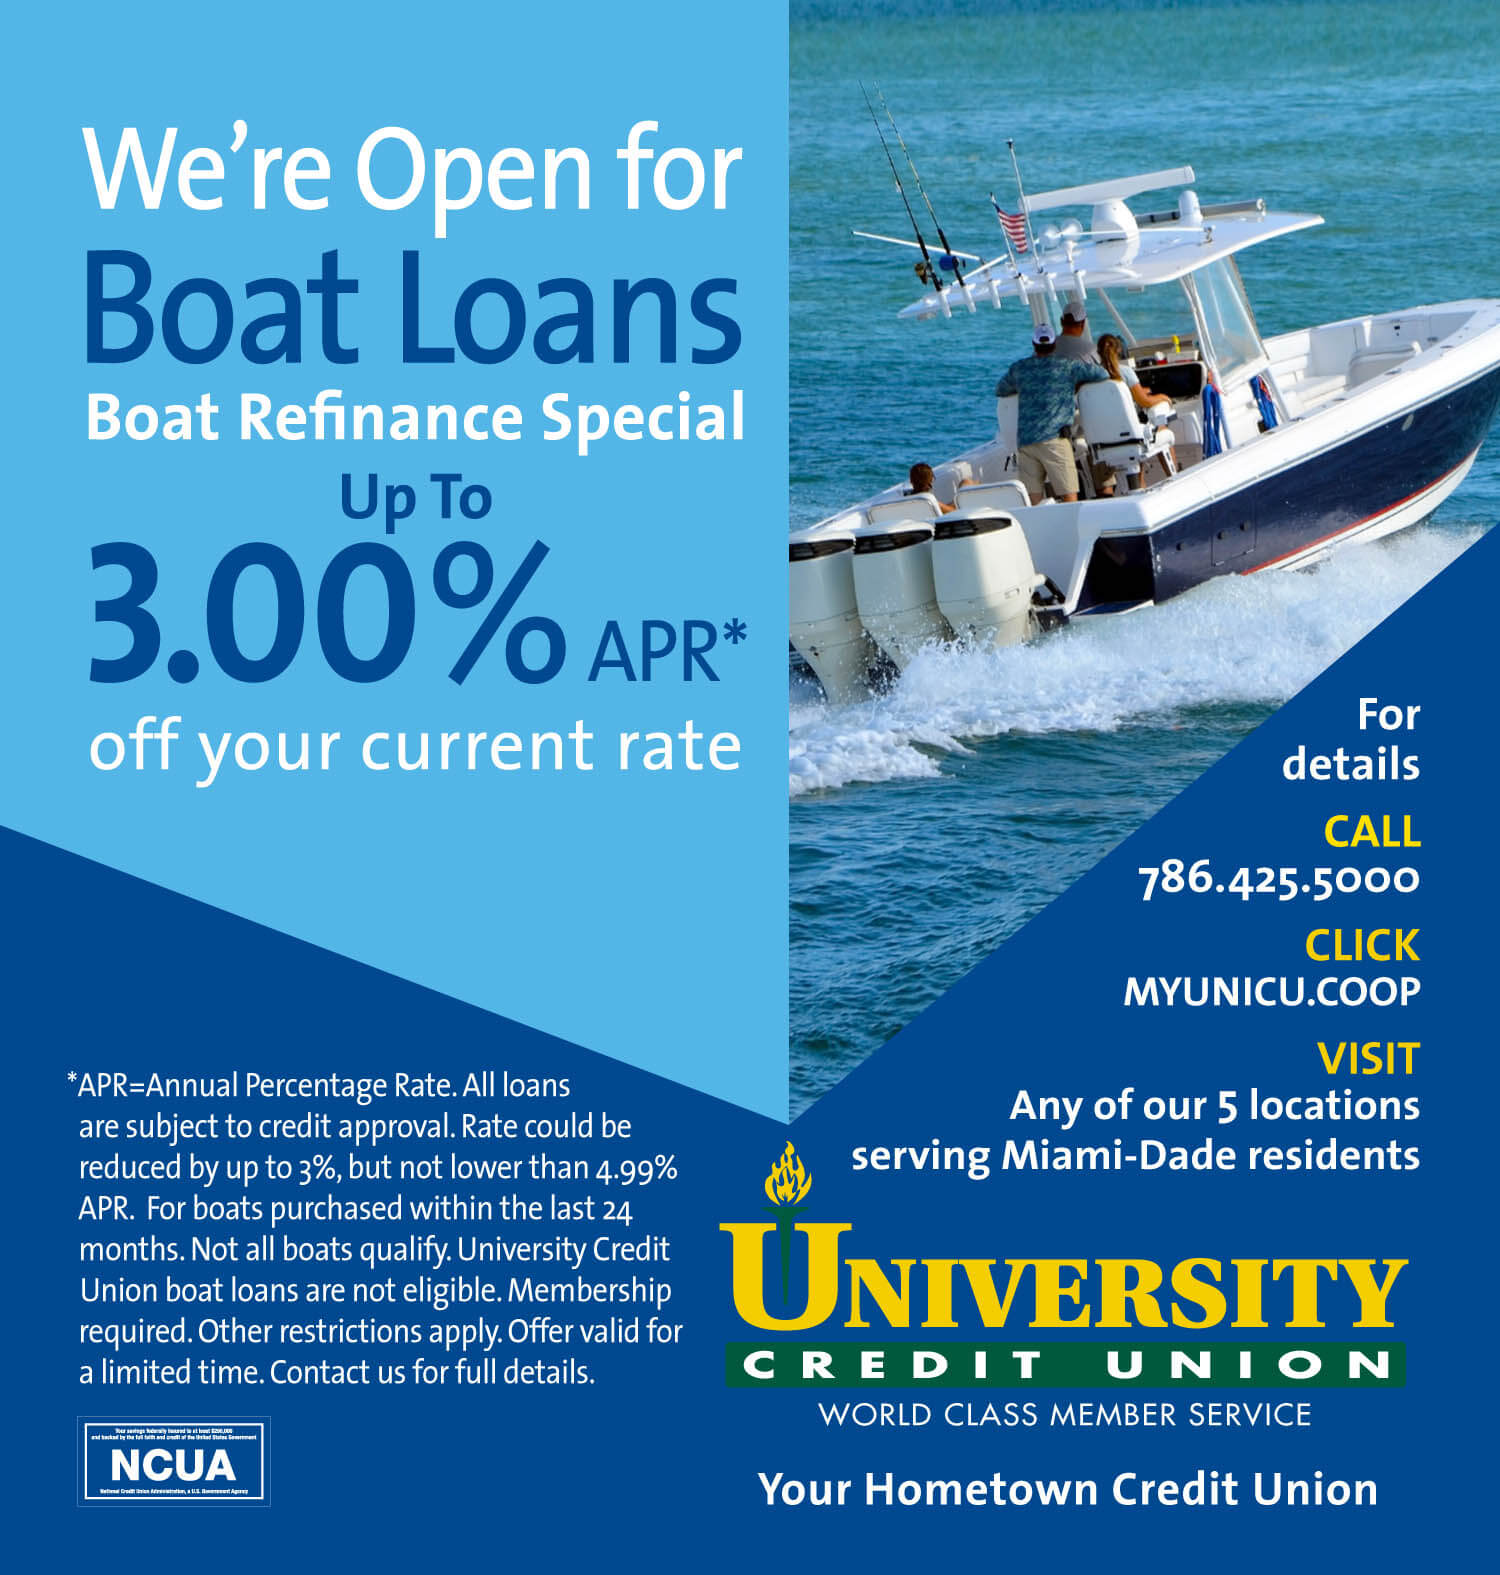 UCU Boat Loan Refinance and Save up to 3%